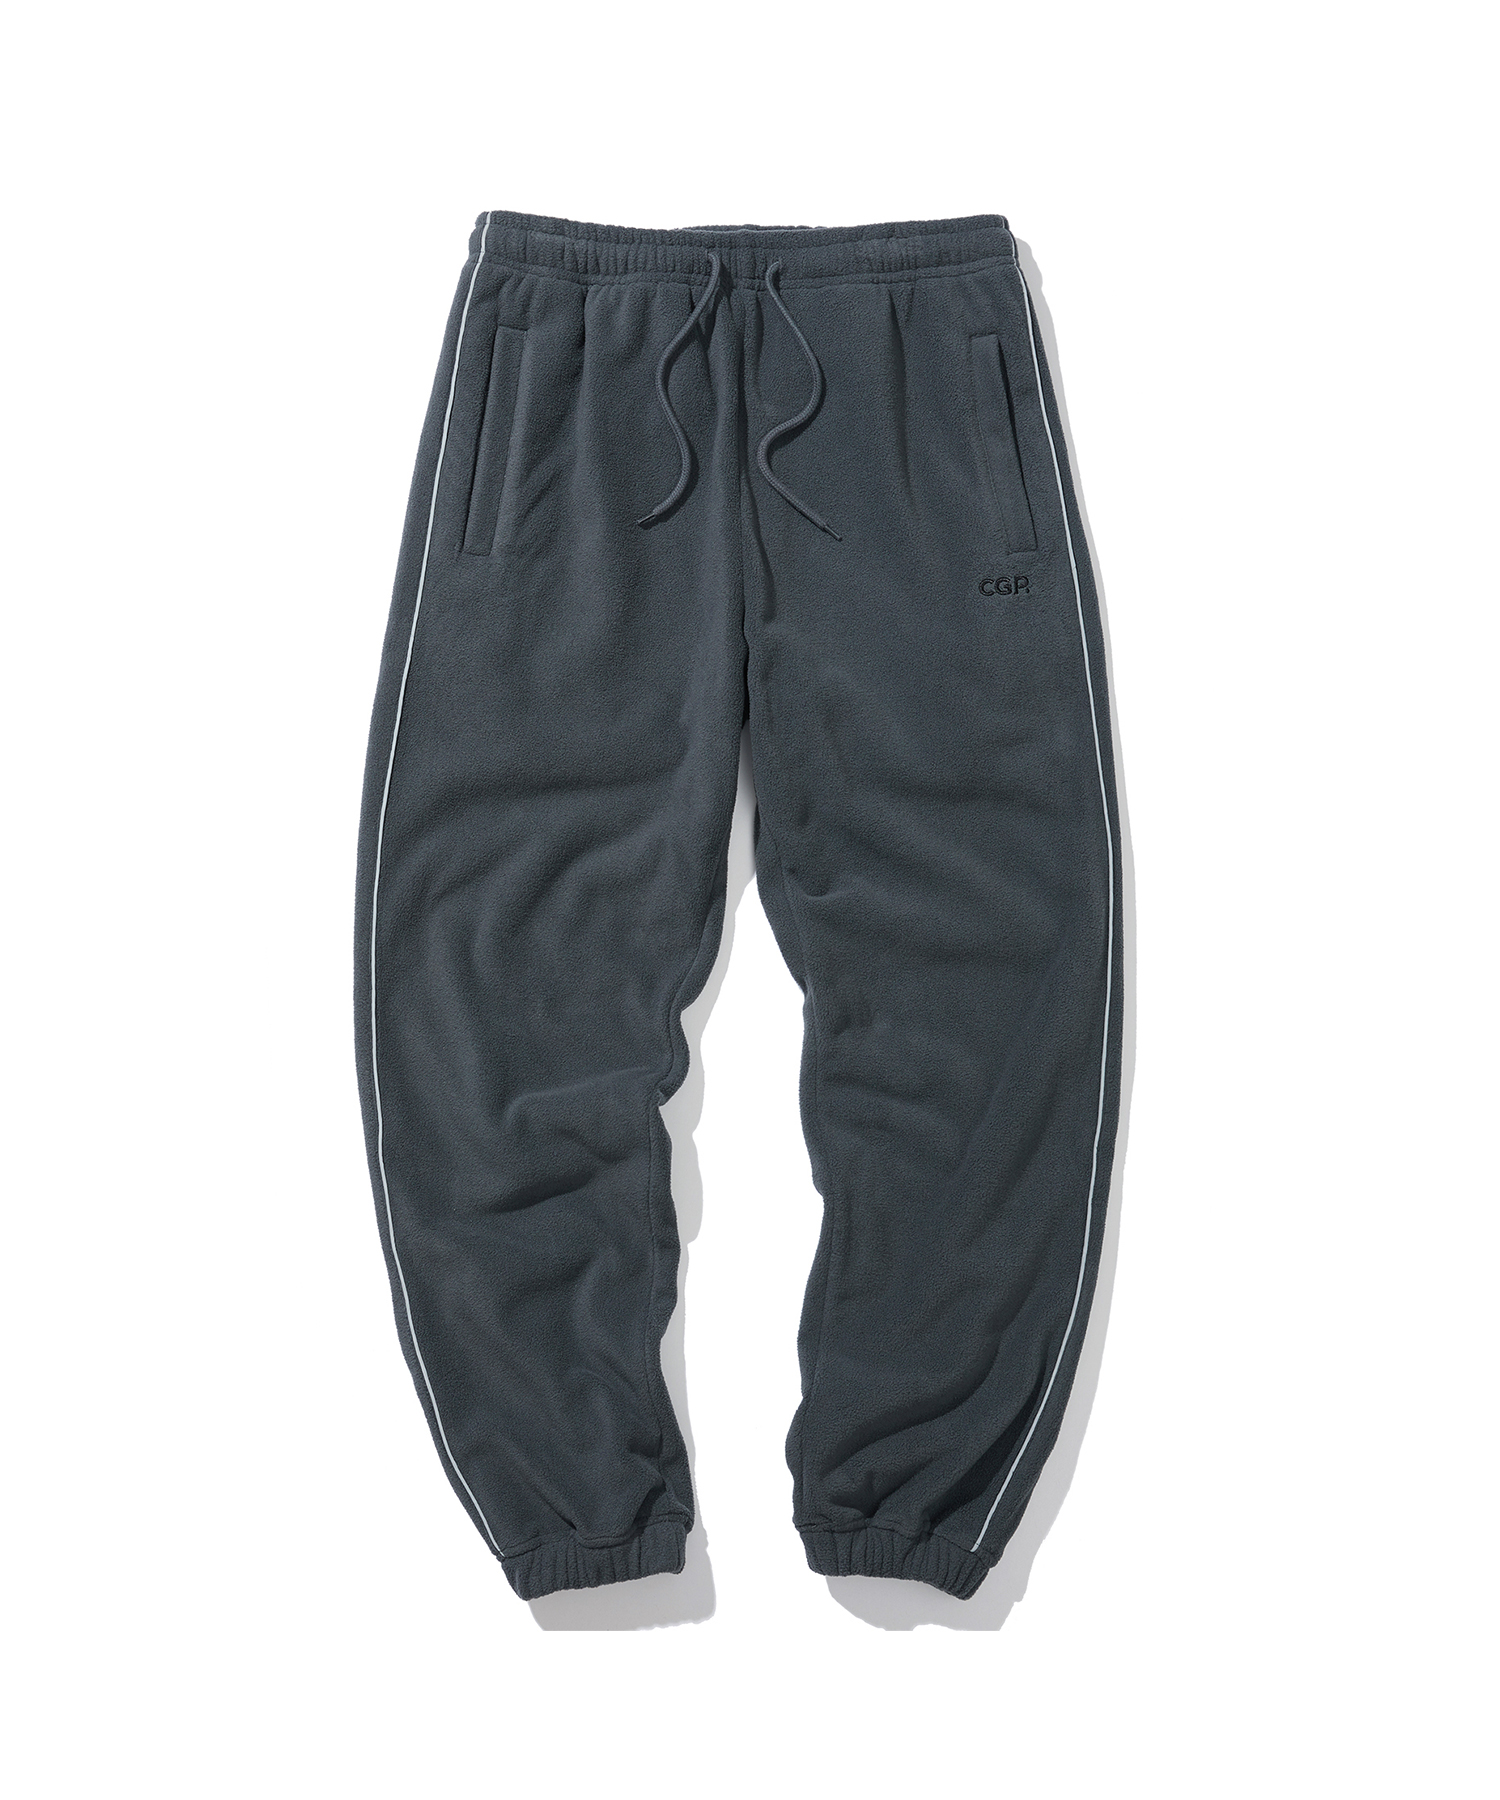 PIPING FLEECE JOGGER PANTS - CH